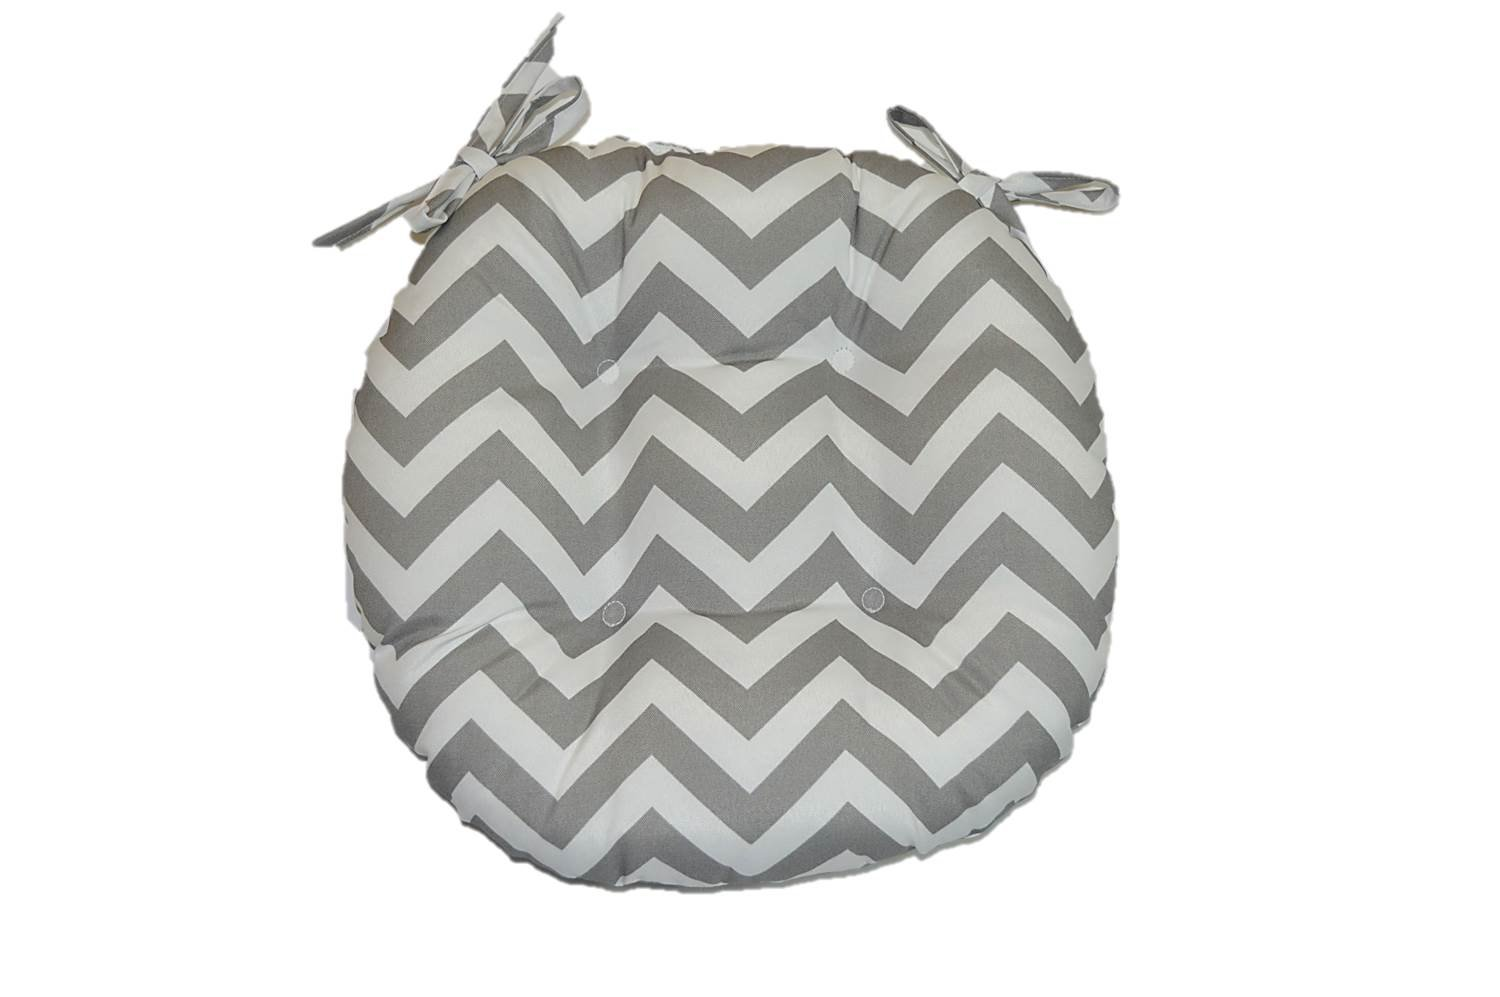 Indoor / Outdoor Round Tufted Bistro Cushion with Ties - Gray / Grey and White Chevron / Zig Zag Fabric - Choose Size (16'' round)